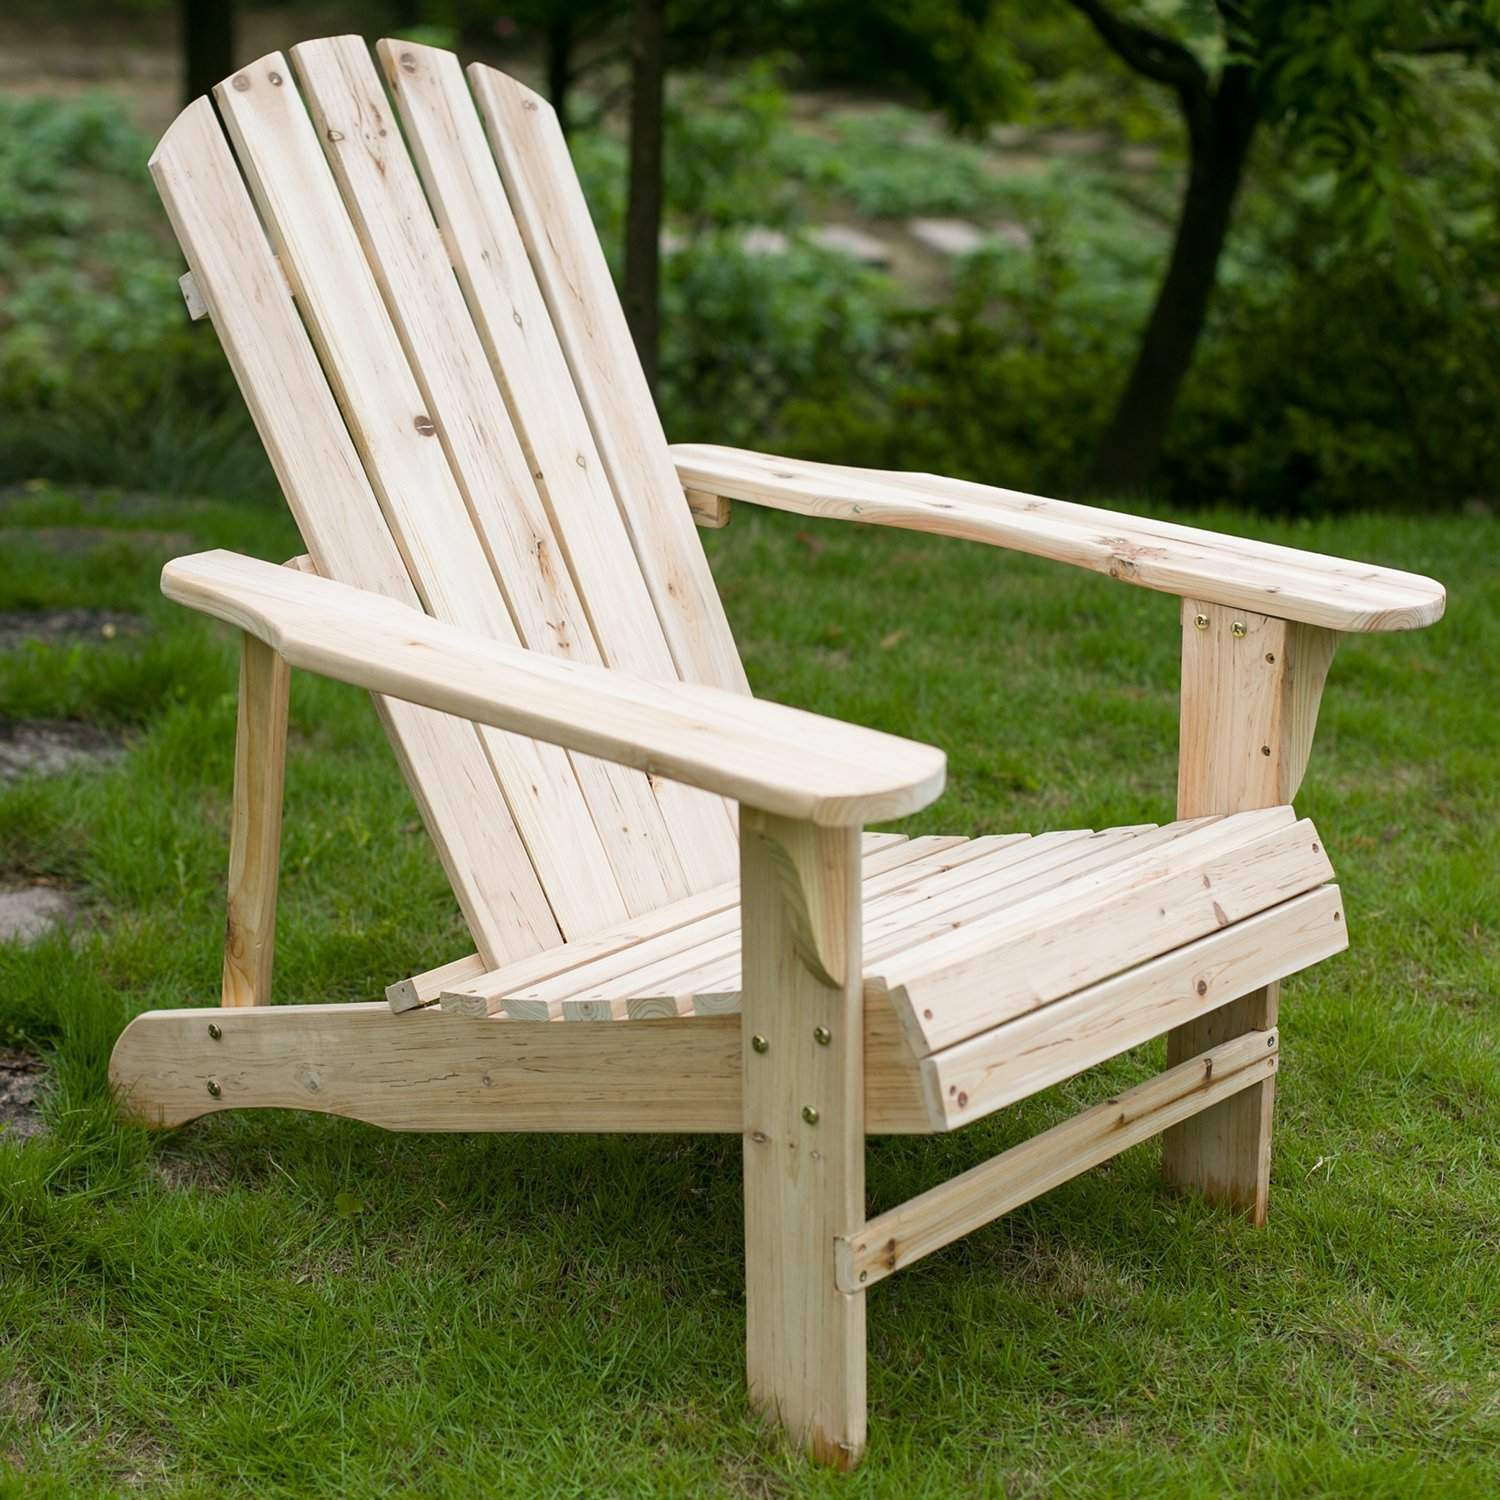 Best ideas about Wooden Patio Furniture . Save or Pin Top 10 Best Wood Adirondack Chairs 2018 Now.